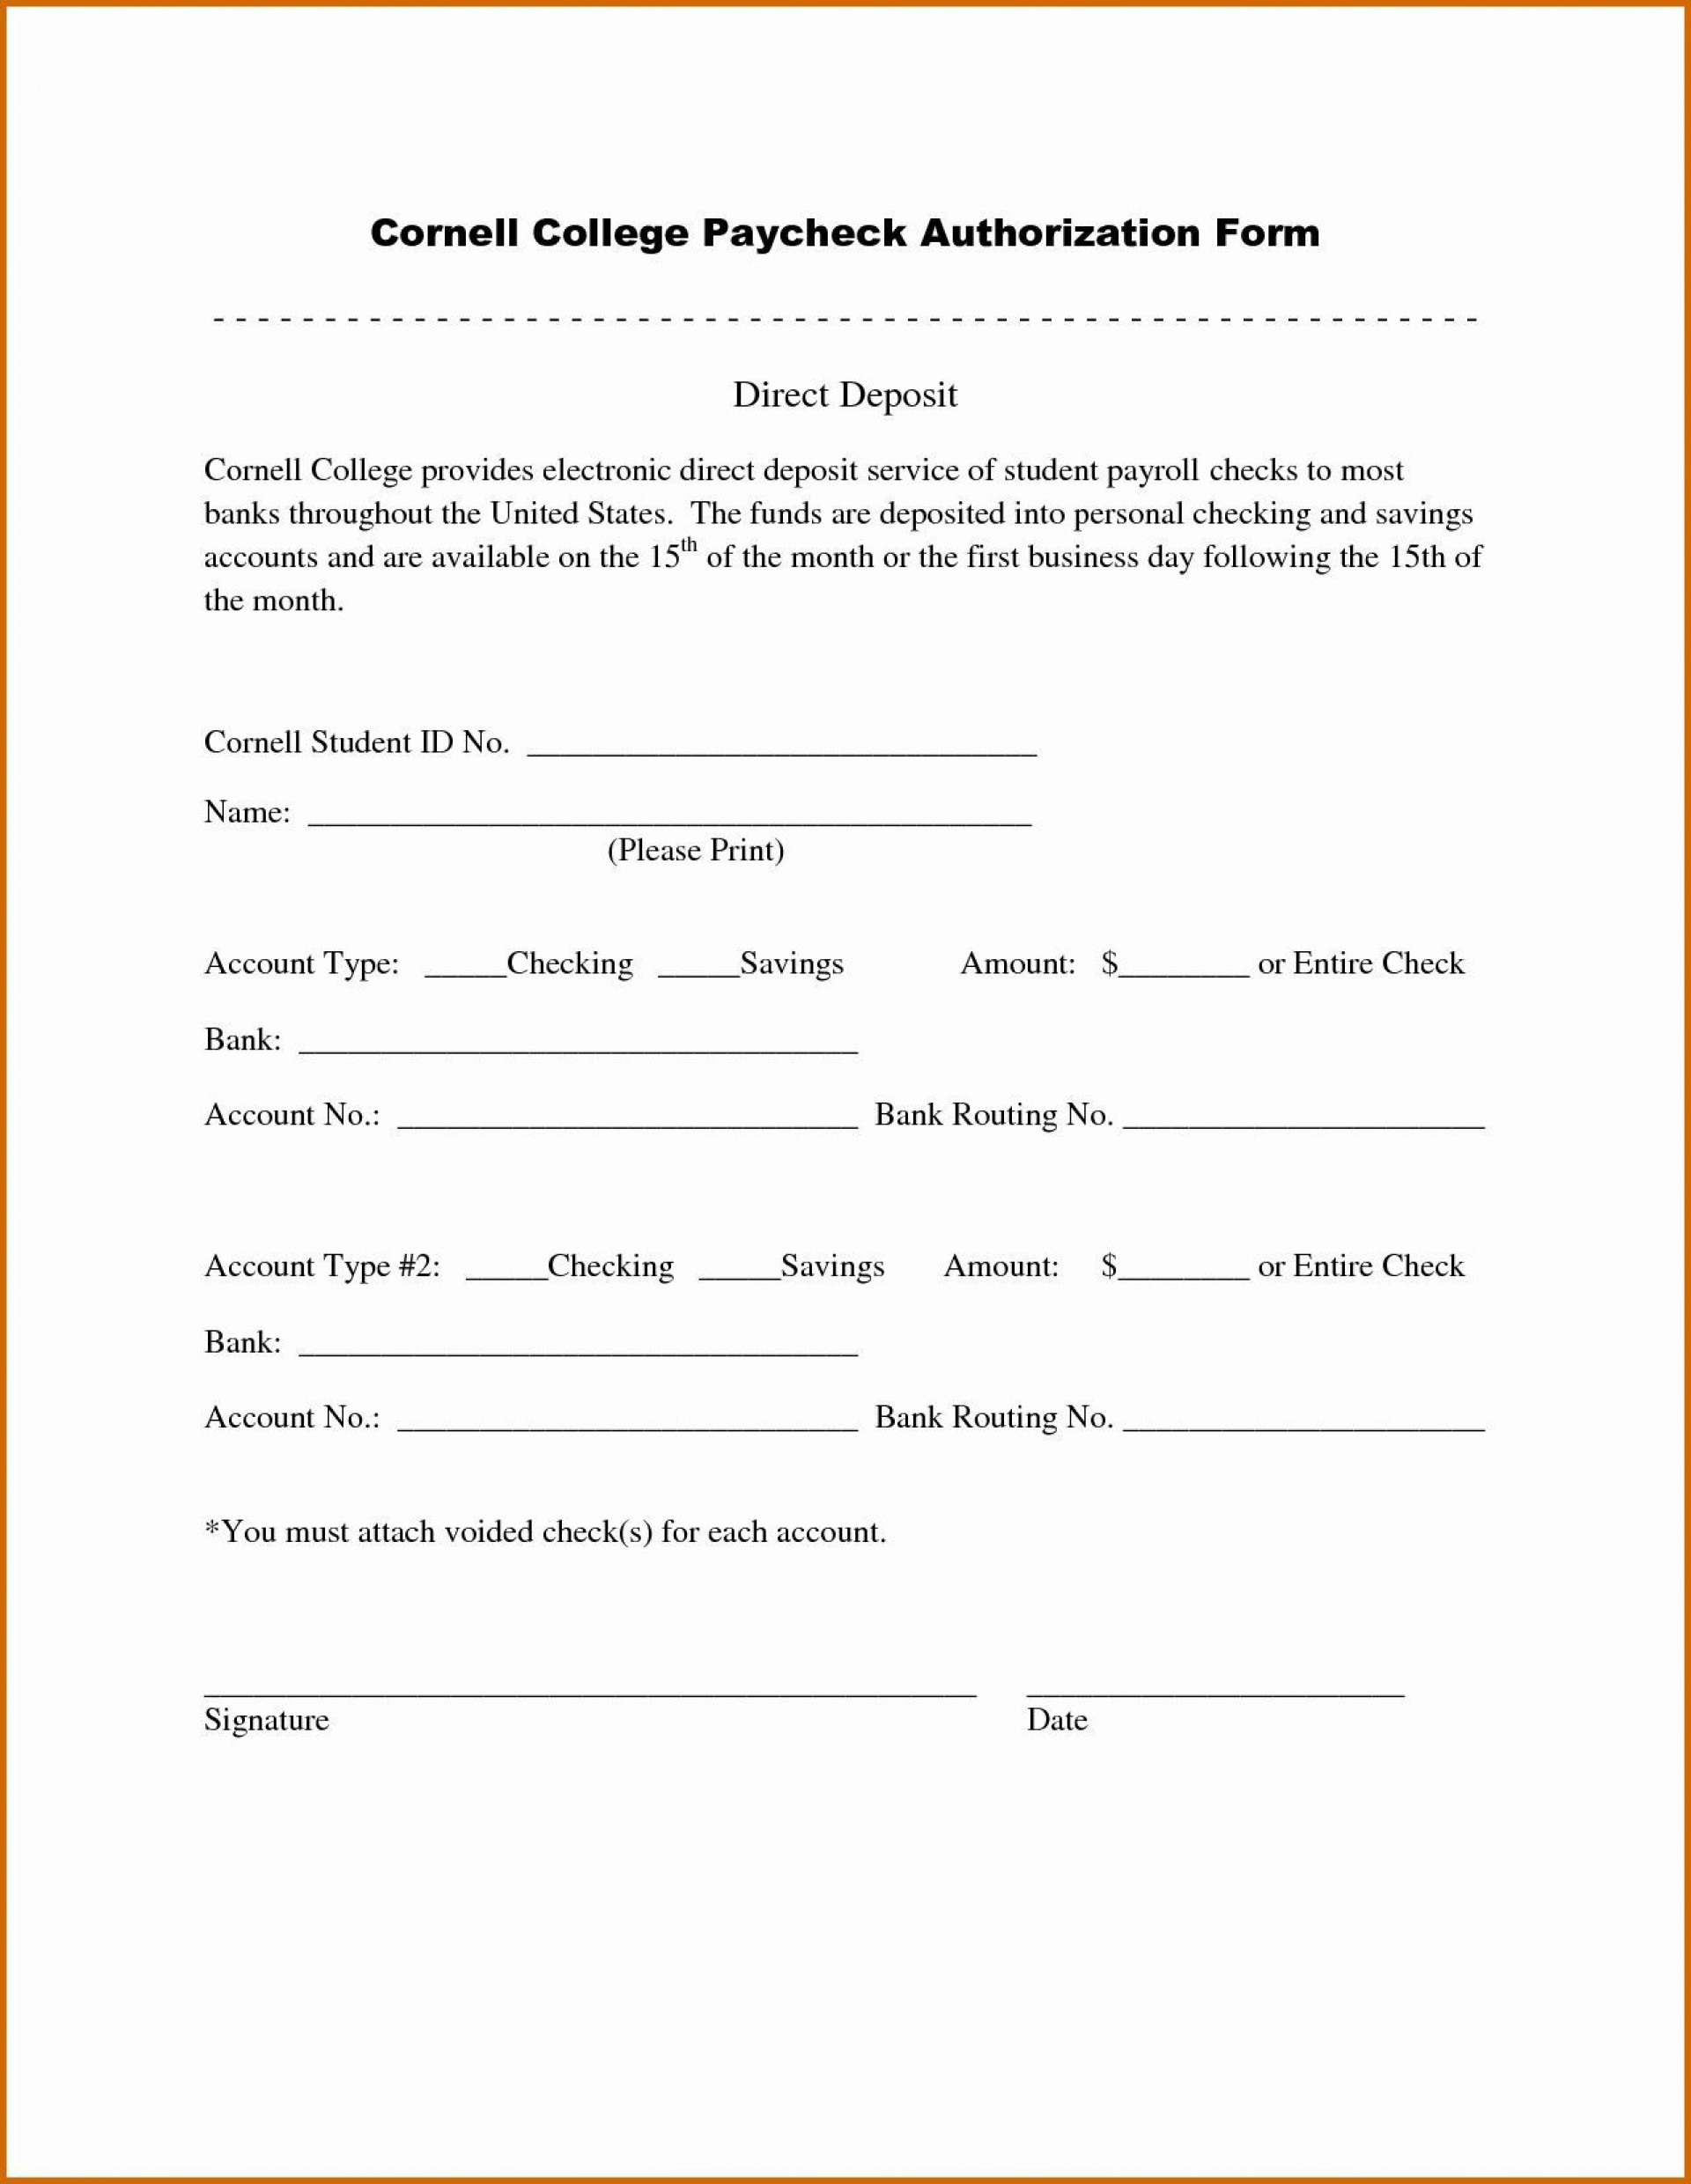 006 Frightening Direct Deposit Cancellation Form Template Idea  Authorization Canada Word Payroll1920